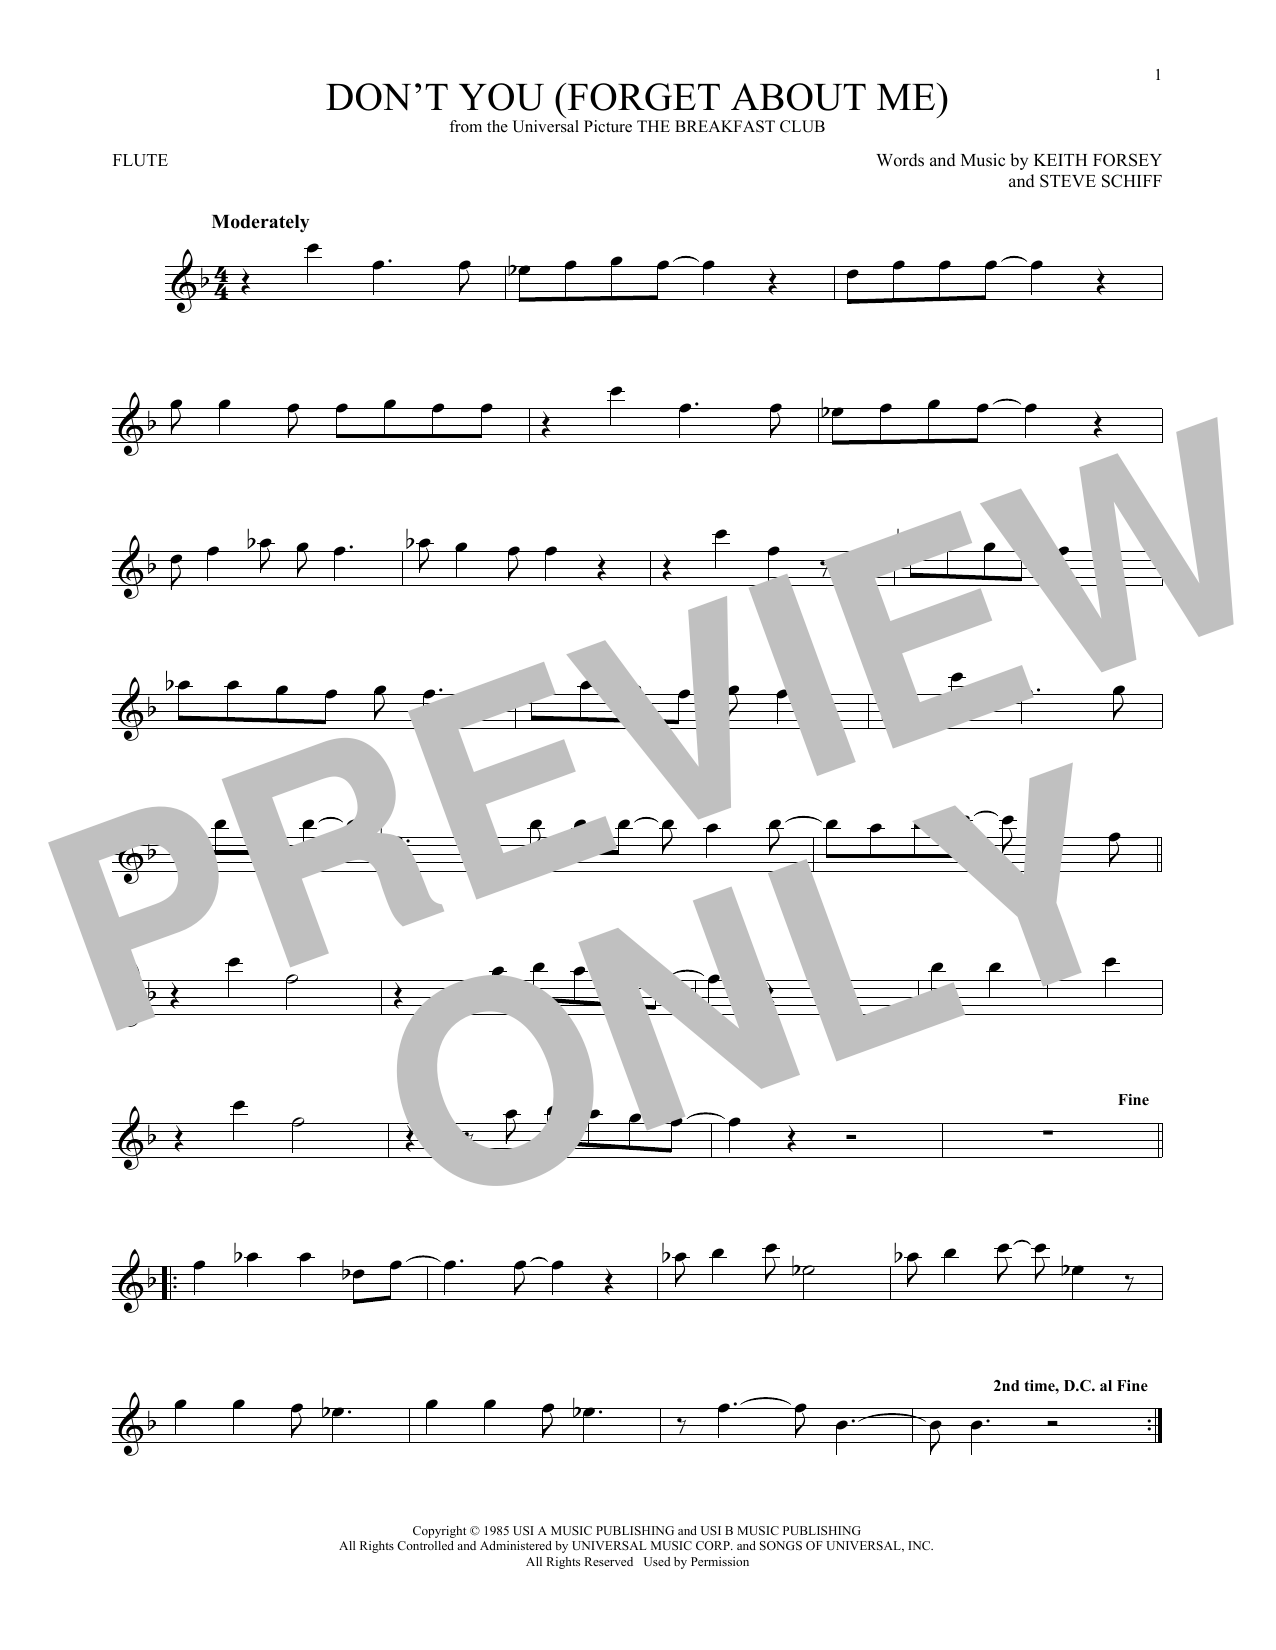 Don't You (Forget About Me) (Flute Solo)